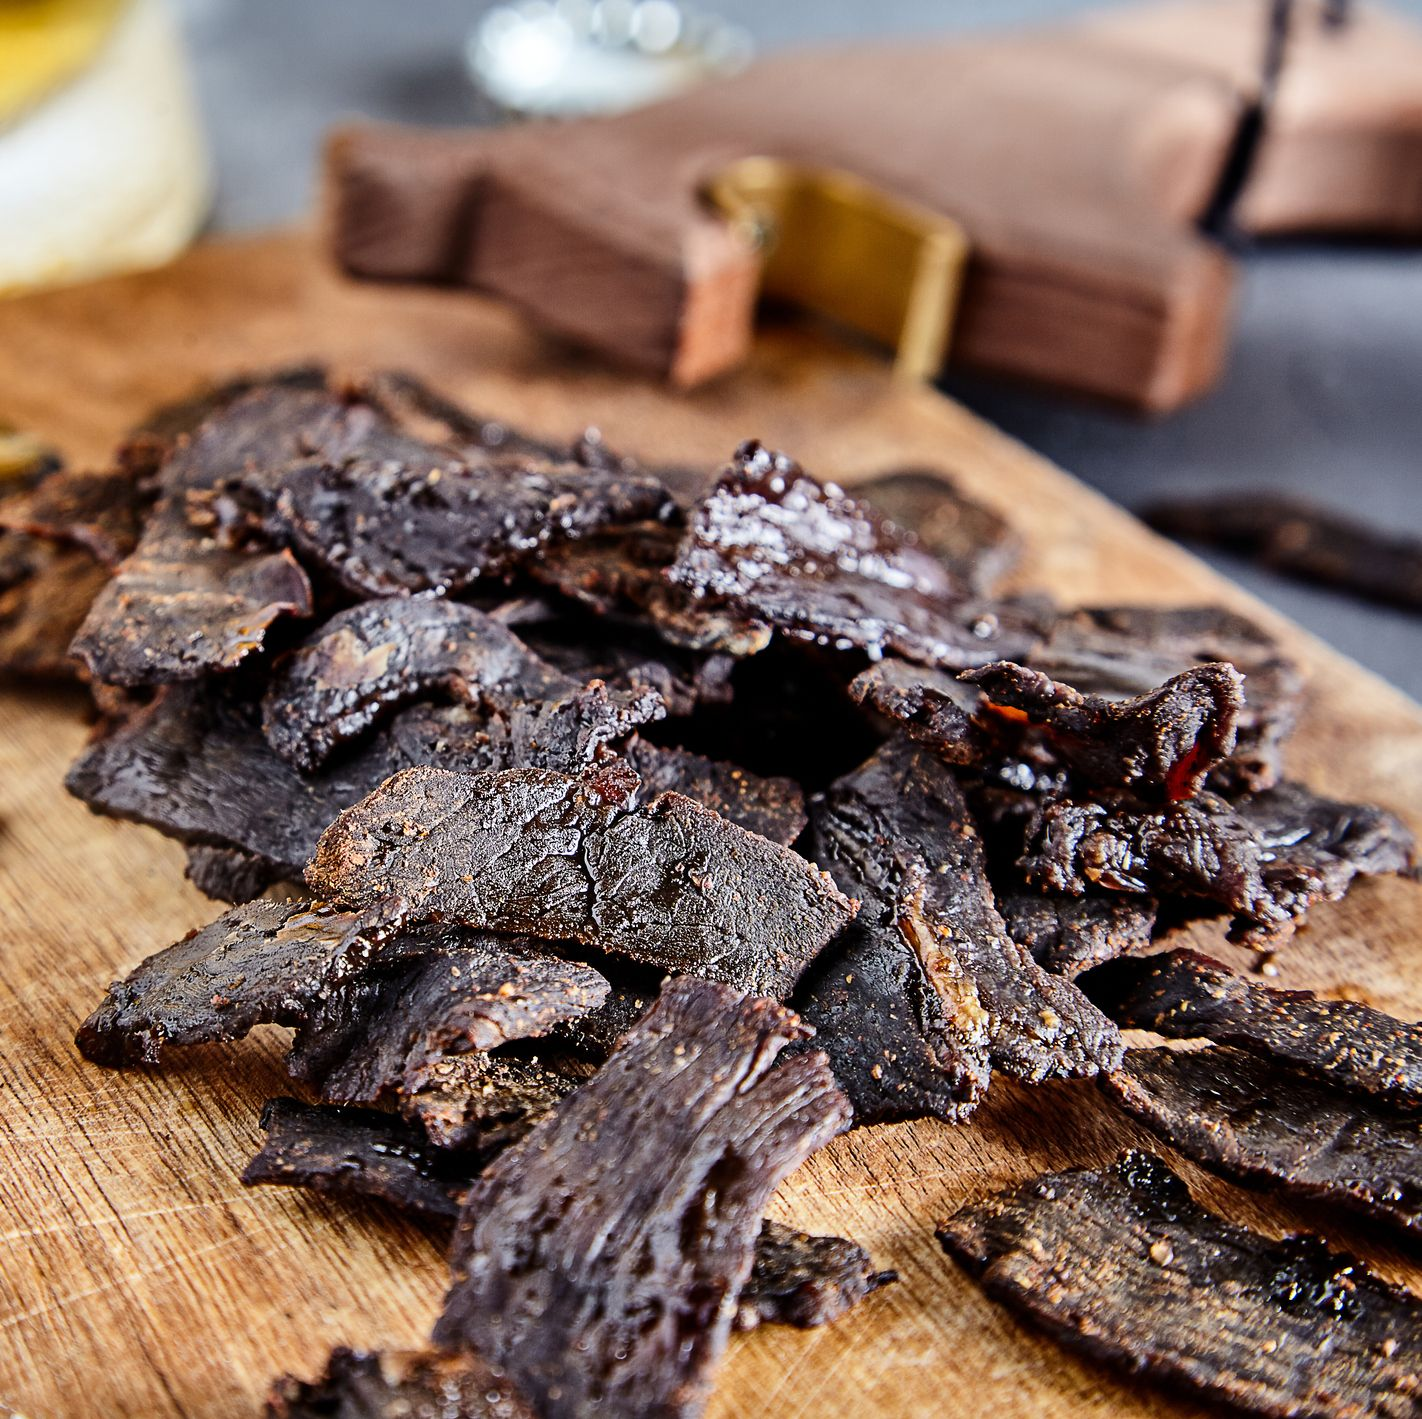 The Best Jerky in the World Is Made from Deer—Not Beef